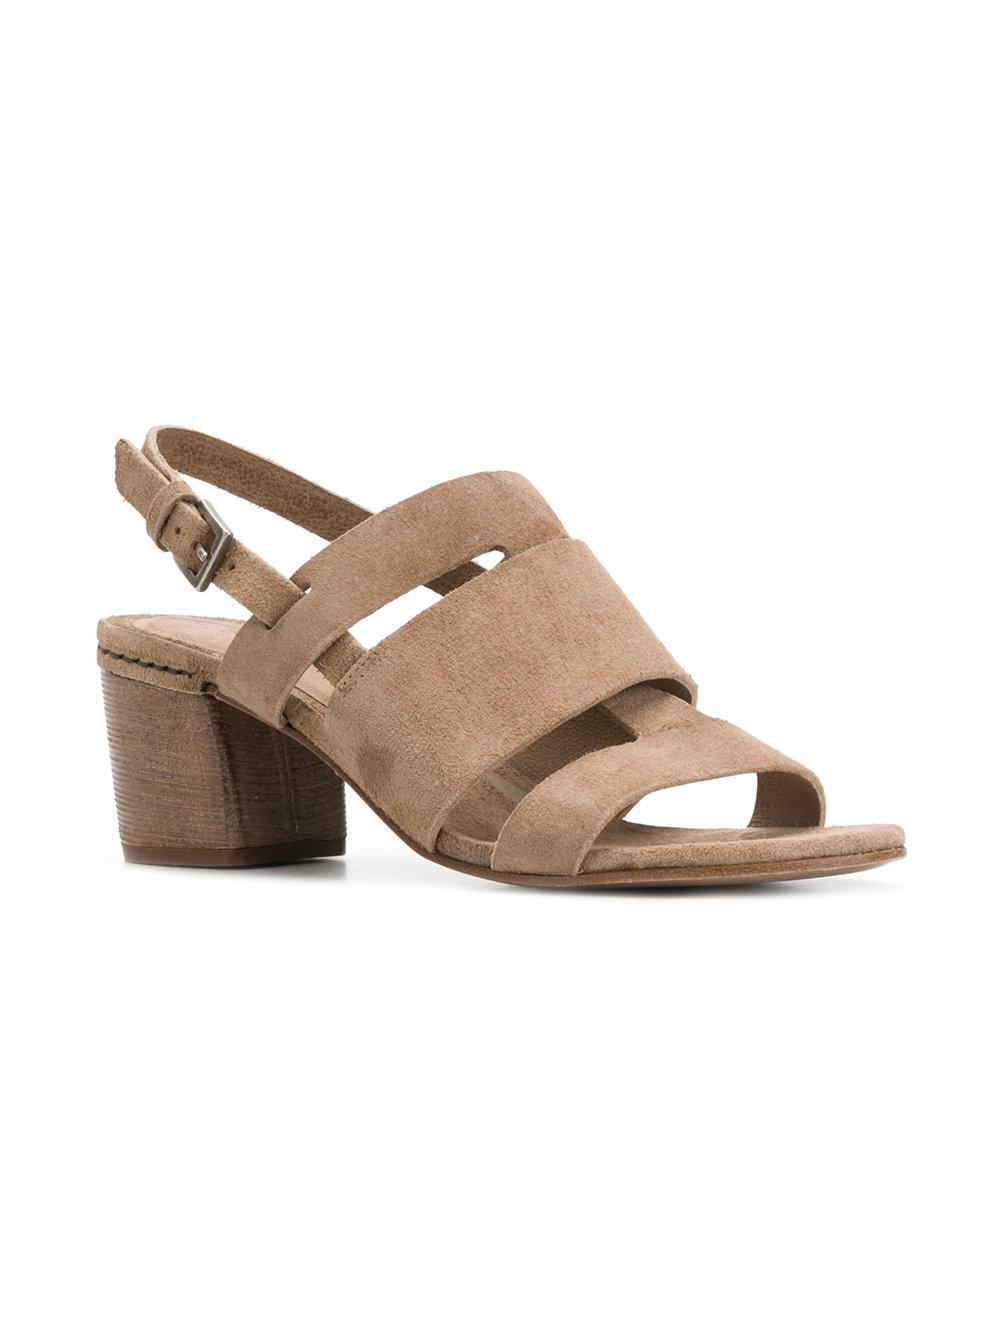 10507 sandals - Nude & Neutrals Del Carlo Cheap Sale Largest Supplier Free Shipping Cheap Popular XEIW3e8